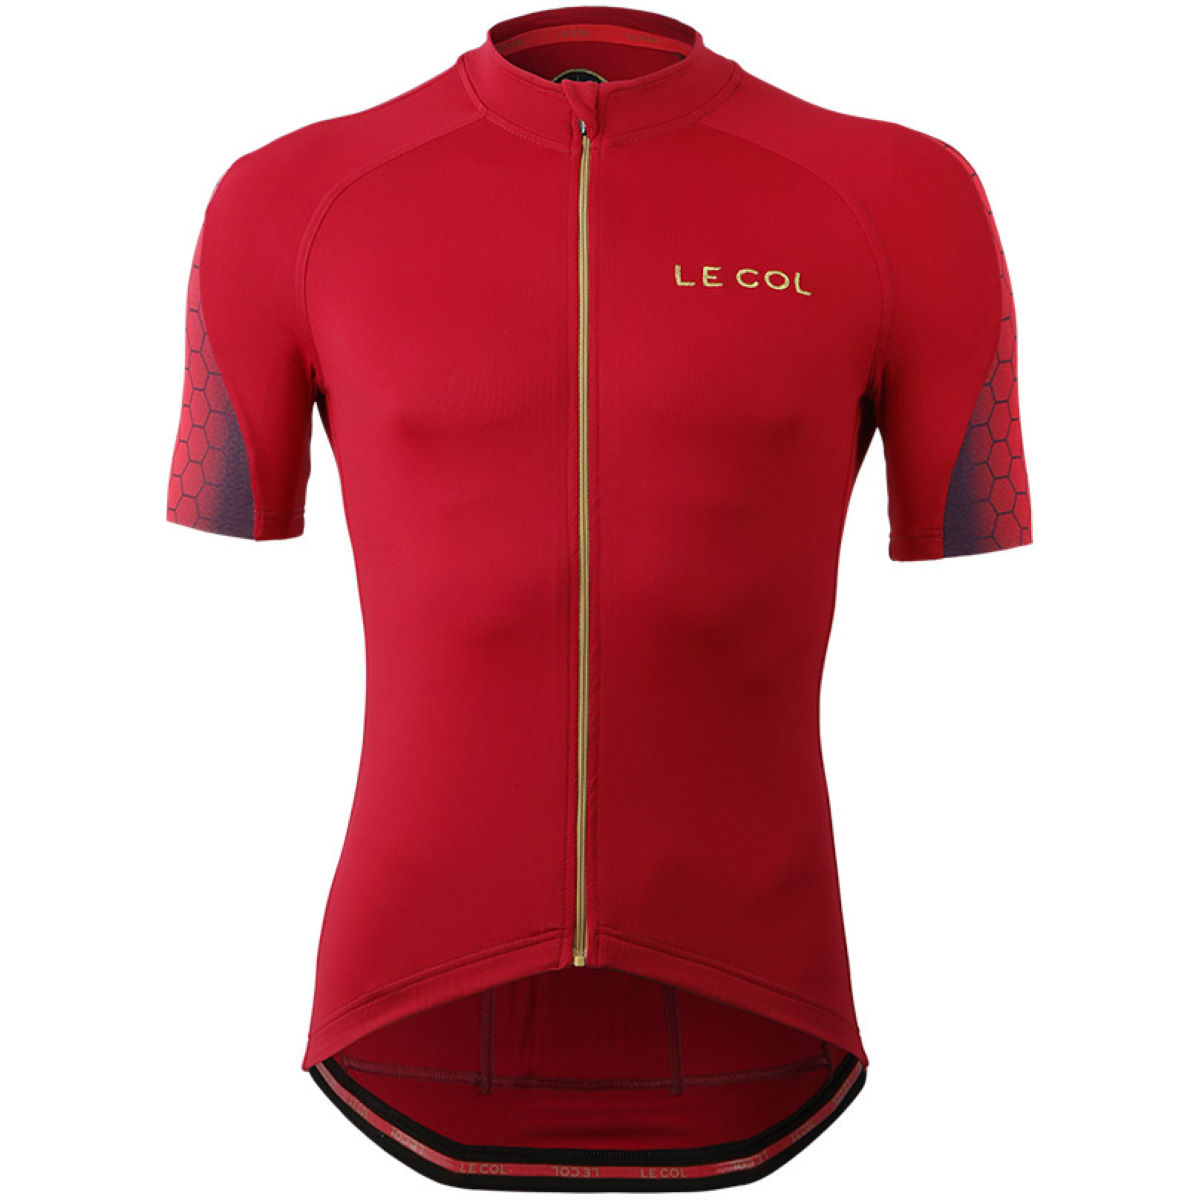 Le Col Le Col Hors Categorie Hex Jersey   Jerseys